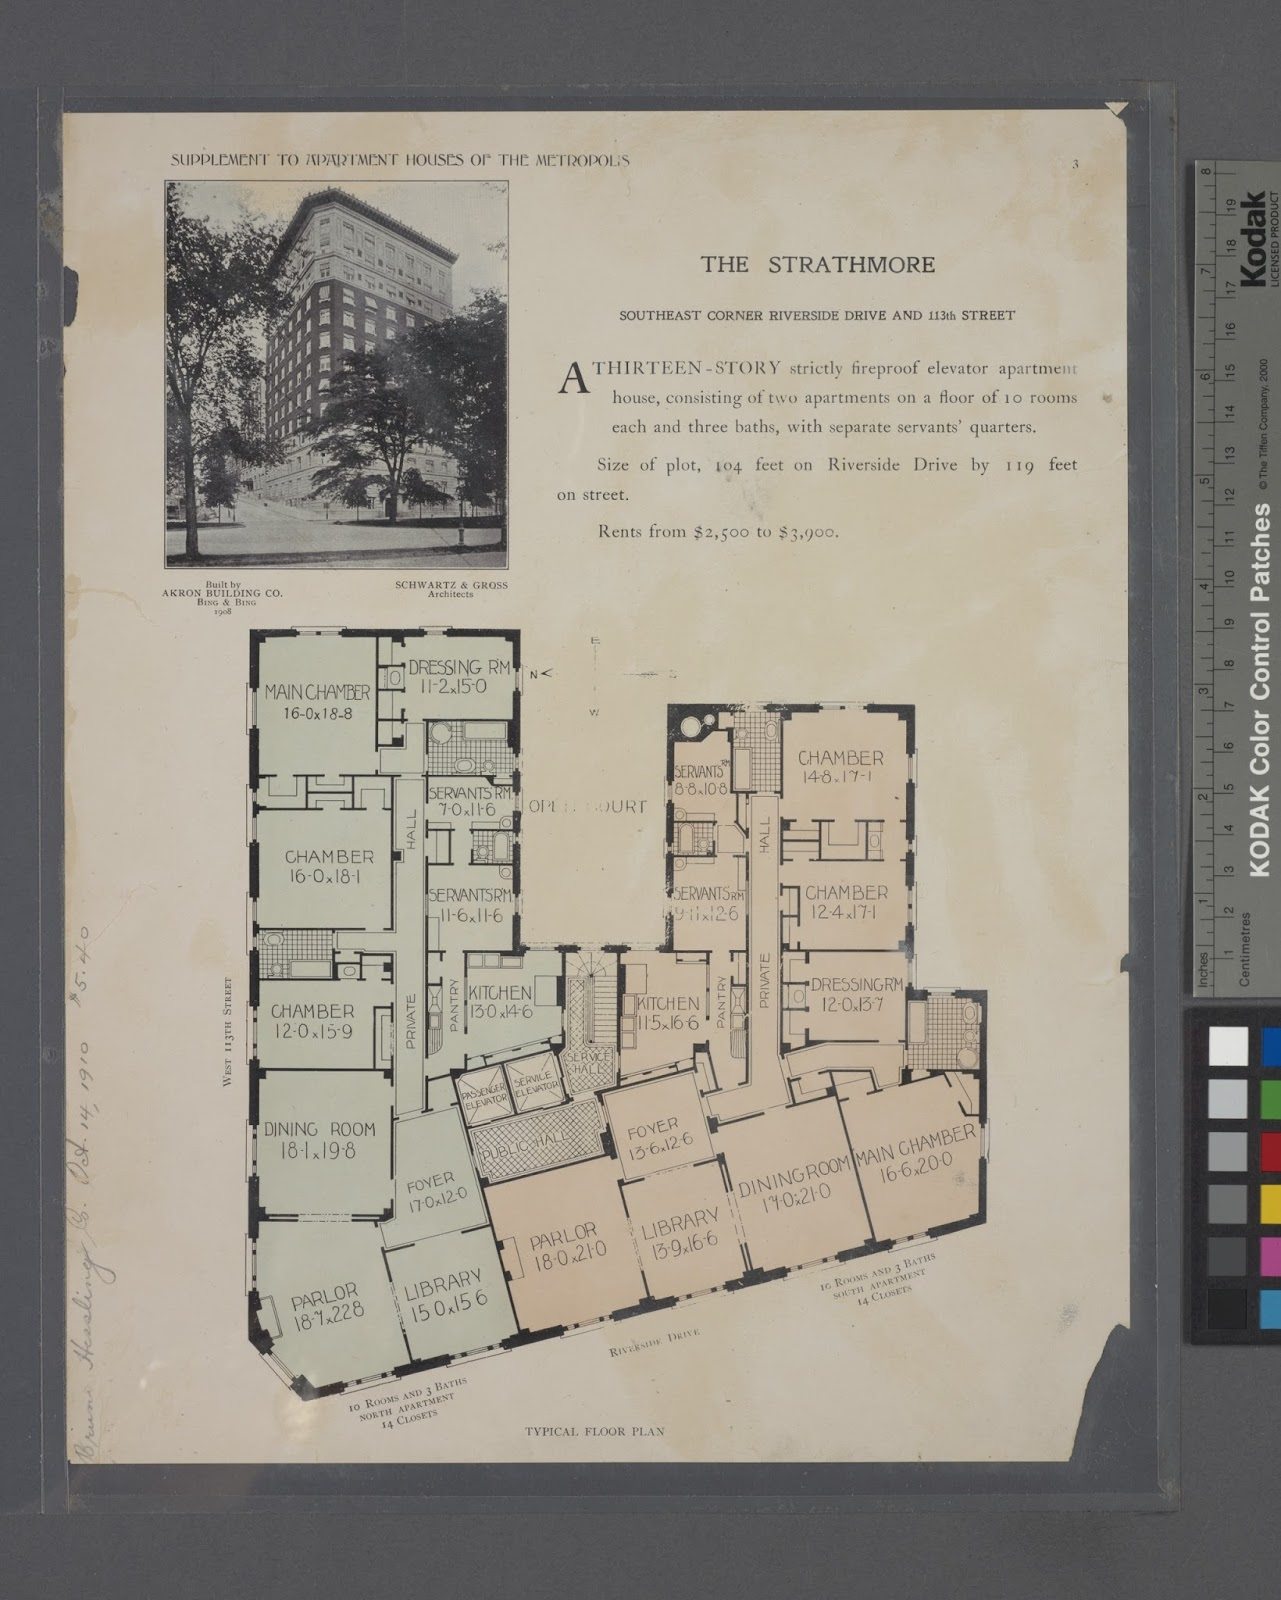 Propnomicon Vintage Apartment Floorplans